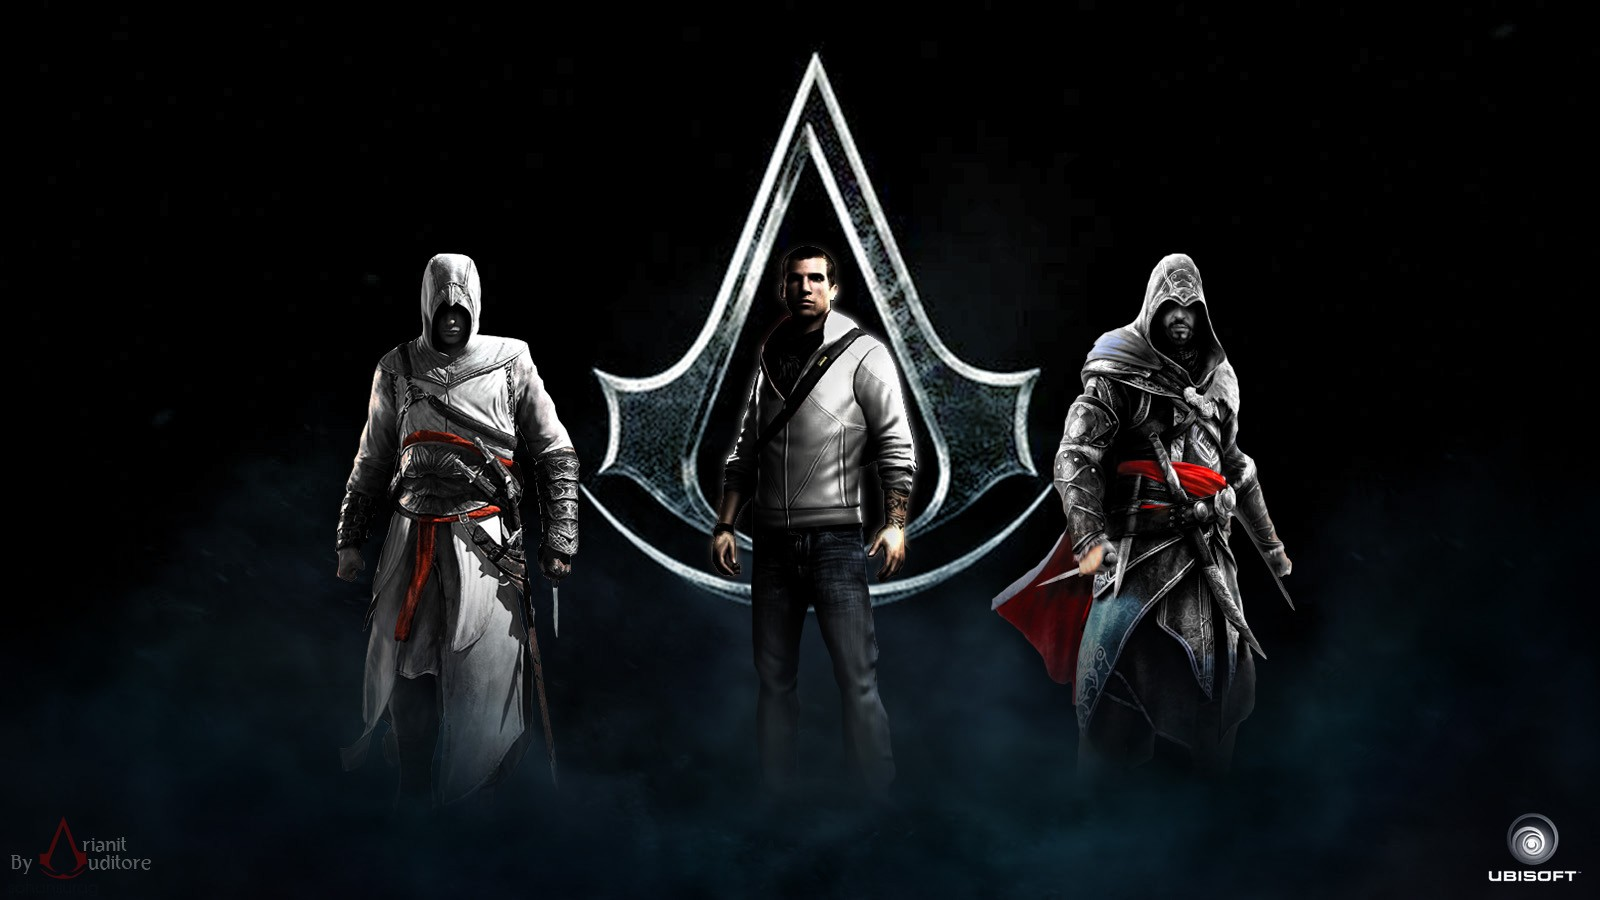 wallpapers hd for mac The Best Assassins Creed Revelations Wallpaper 1600x900